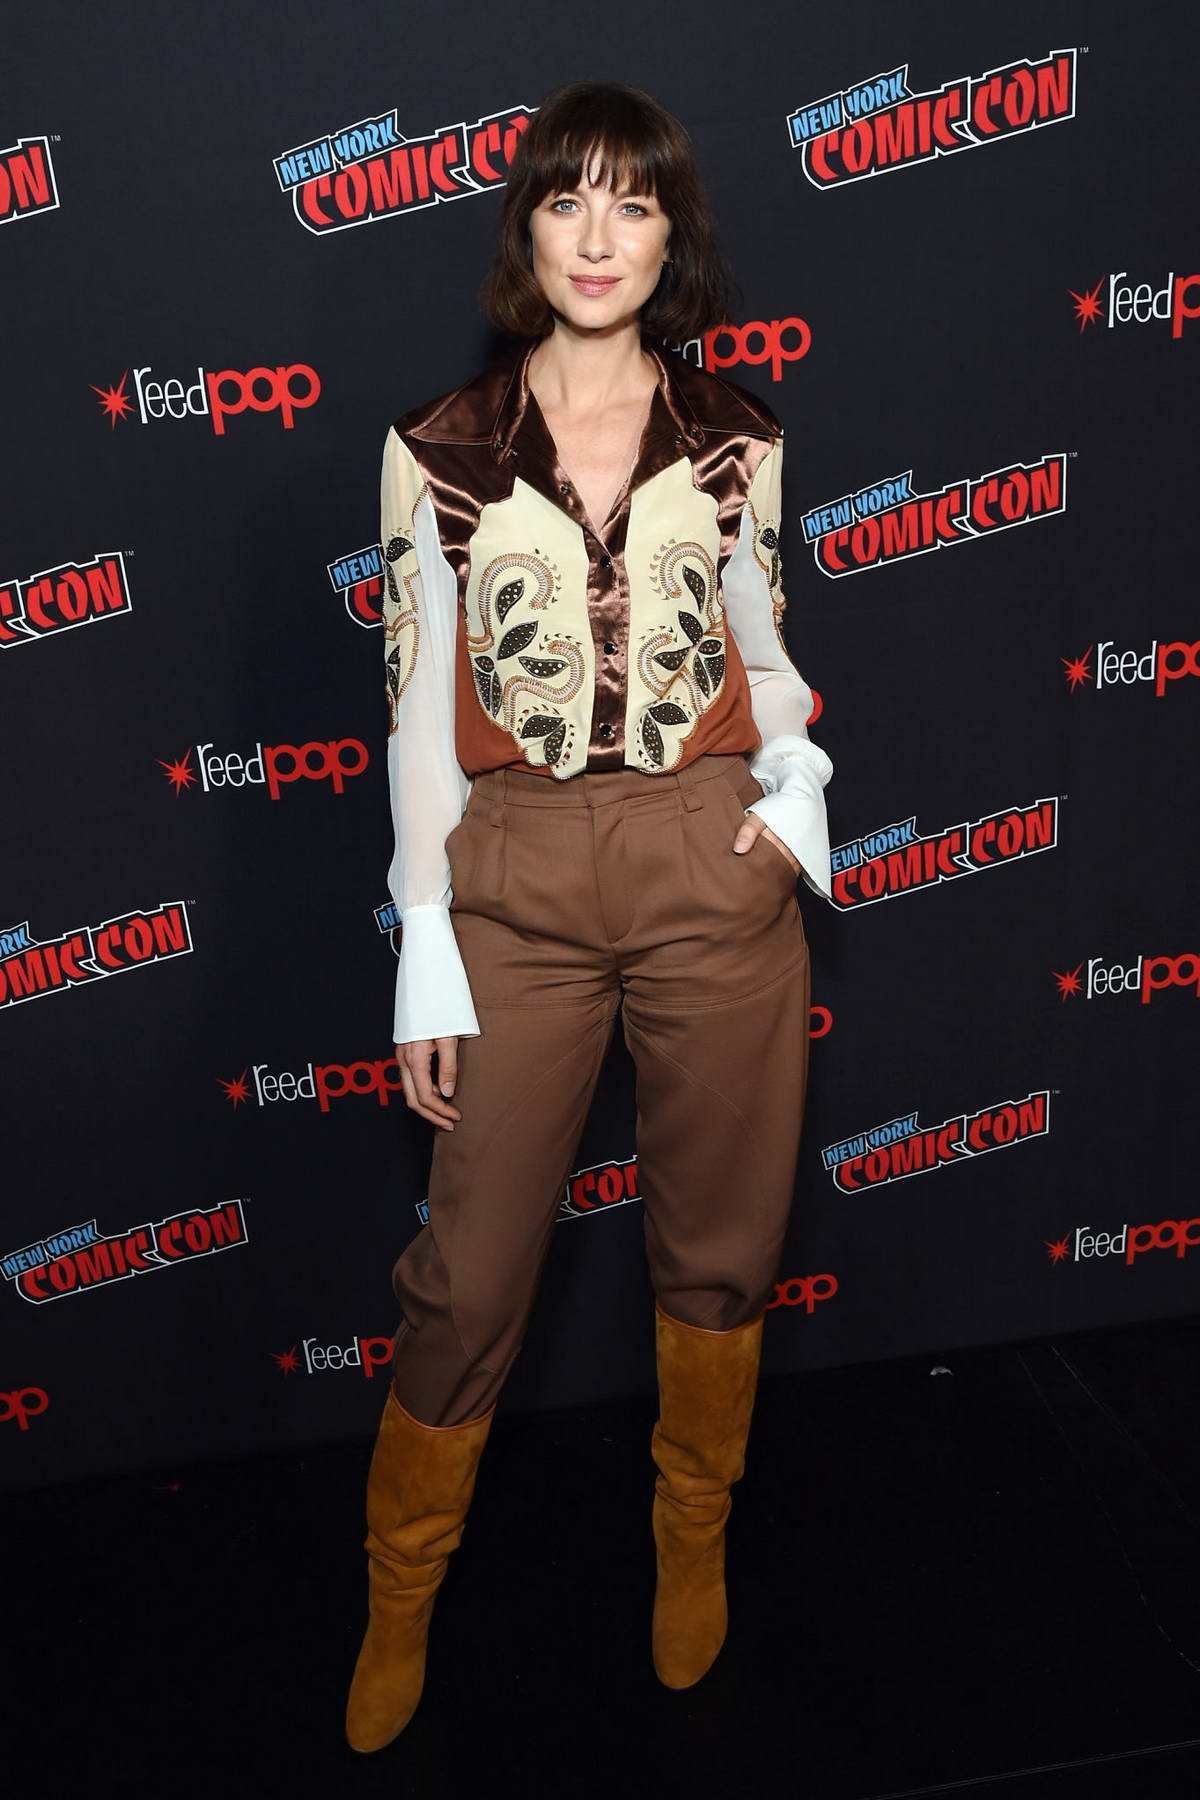 Caitriona Balfe attends 'Outlander' panel during New York Comic Con 2018 (NYCC 2018) at Javits Center in New York City